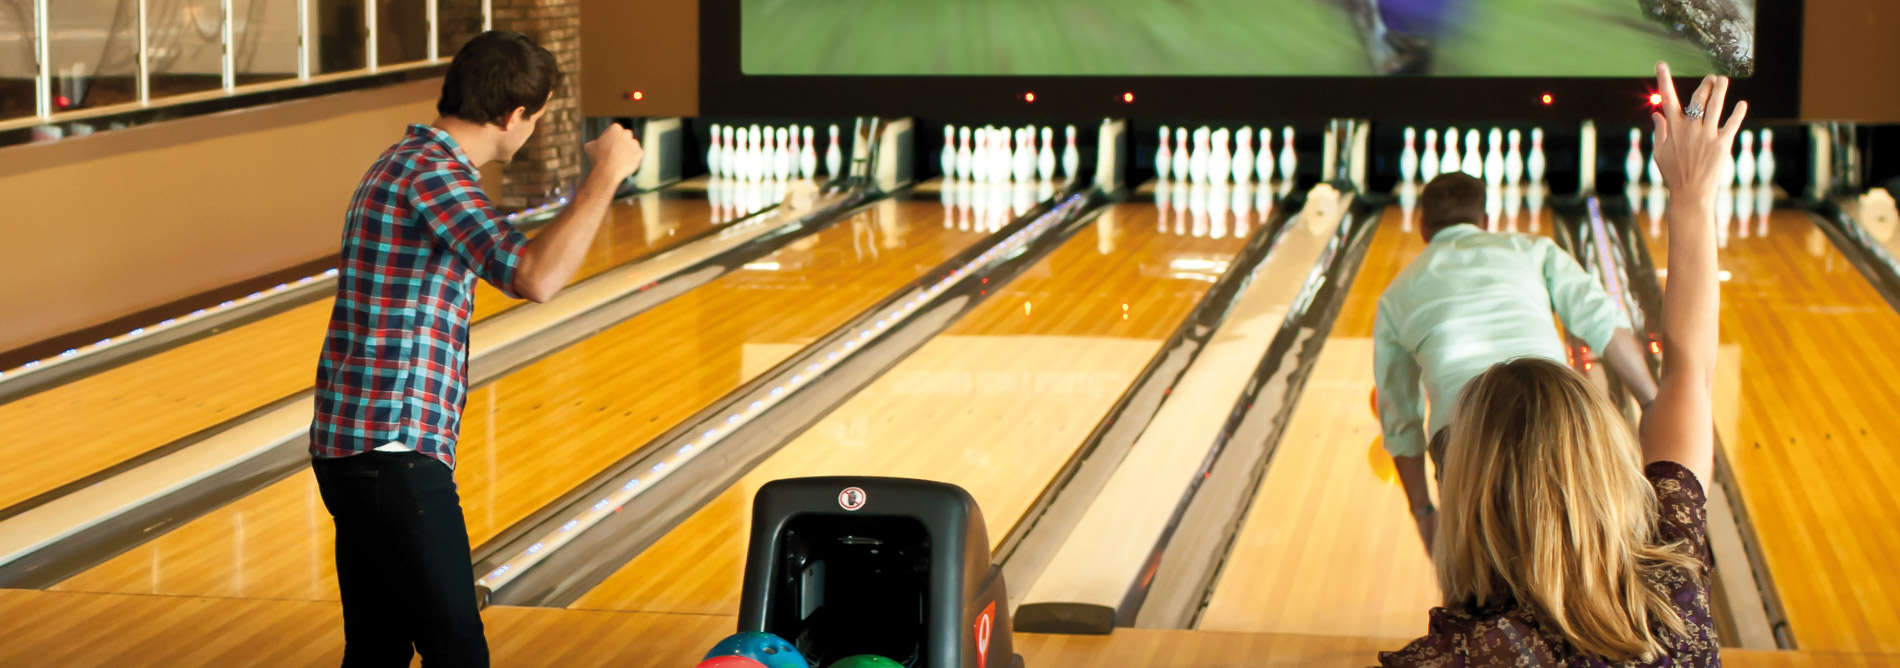 Bowling-Qubicaamf-pinspotter-xli-edge-easier-for-your-customers-main.jpg